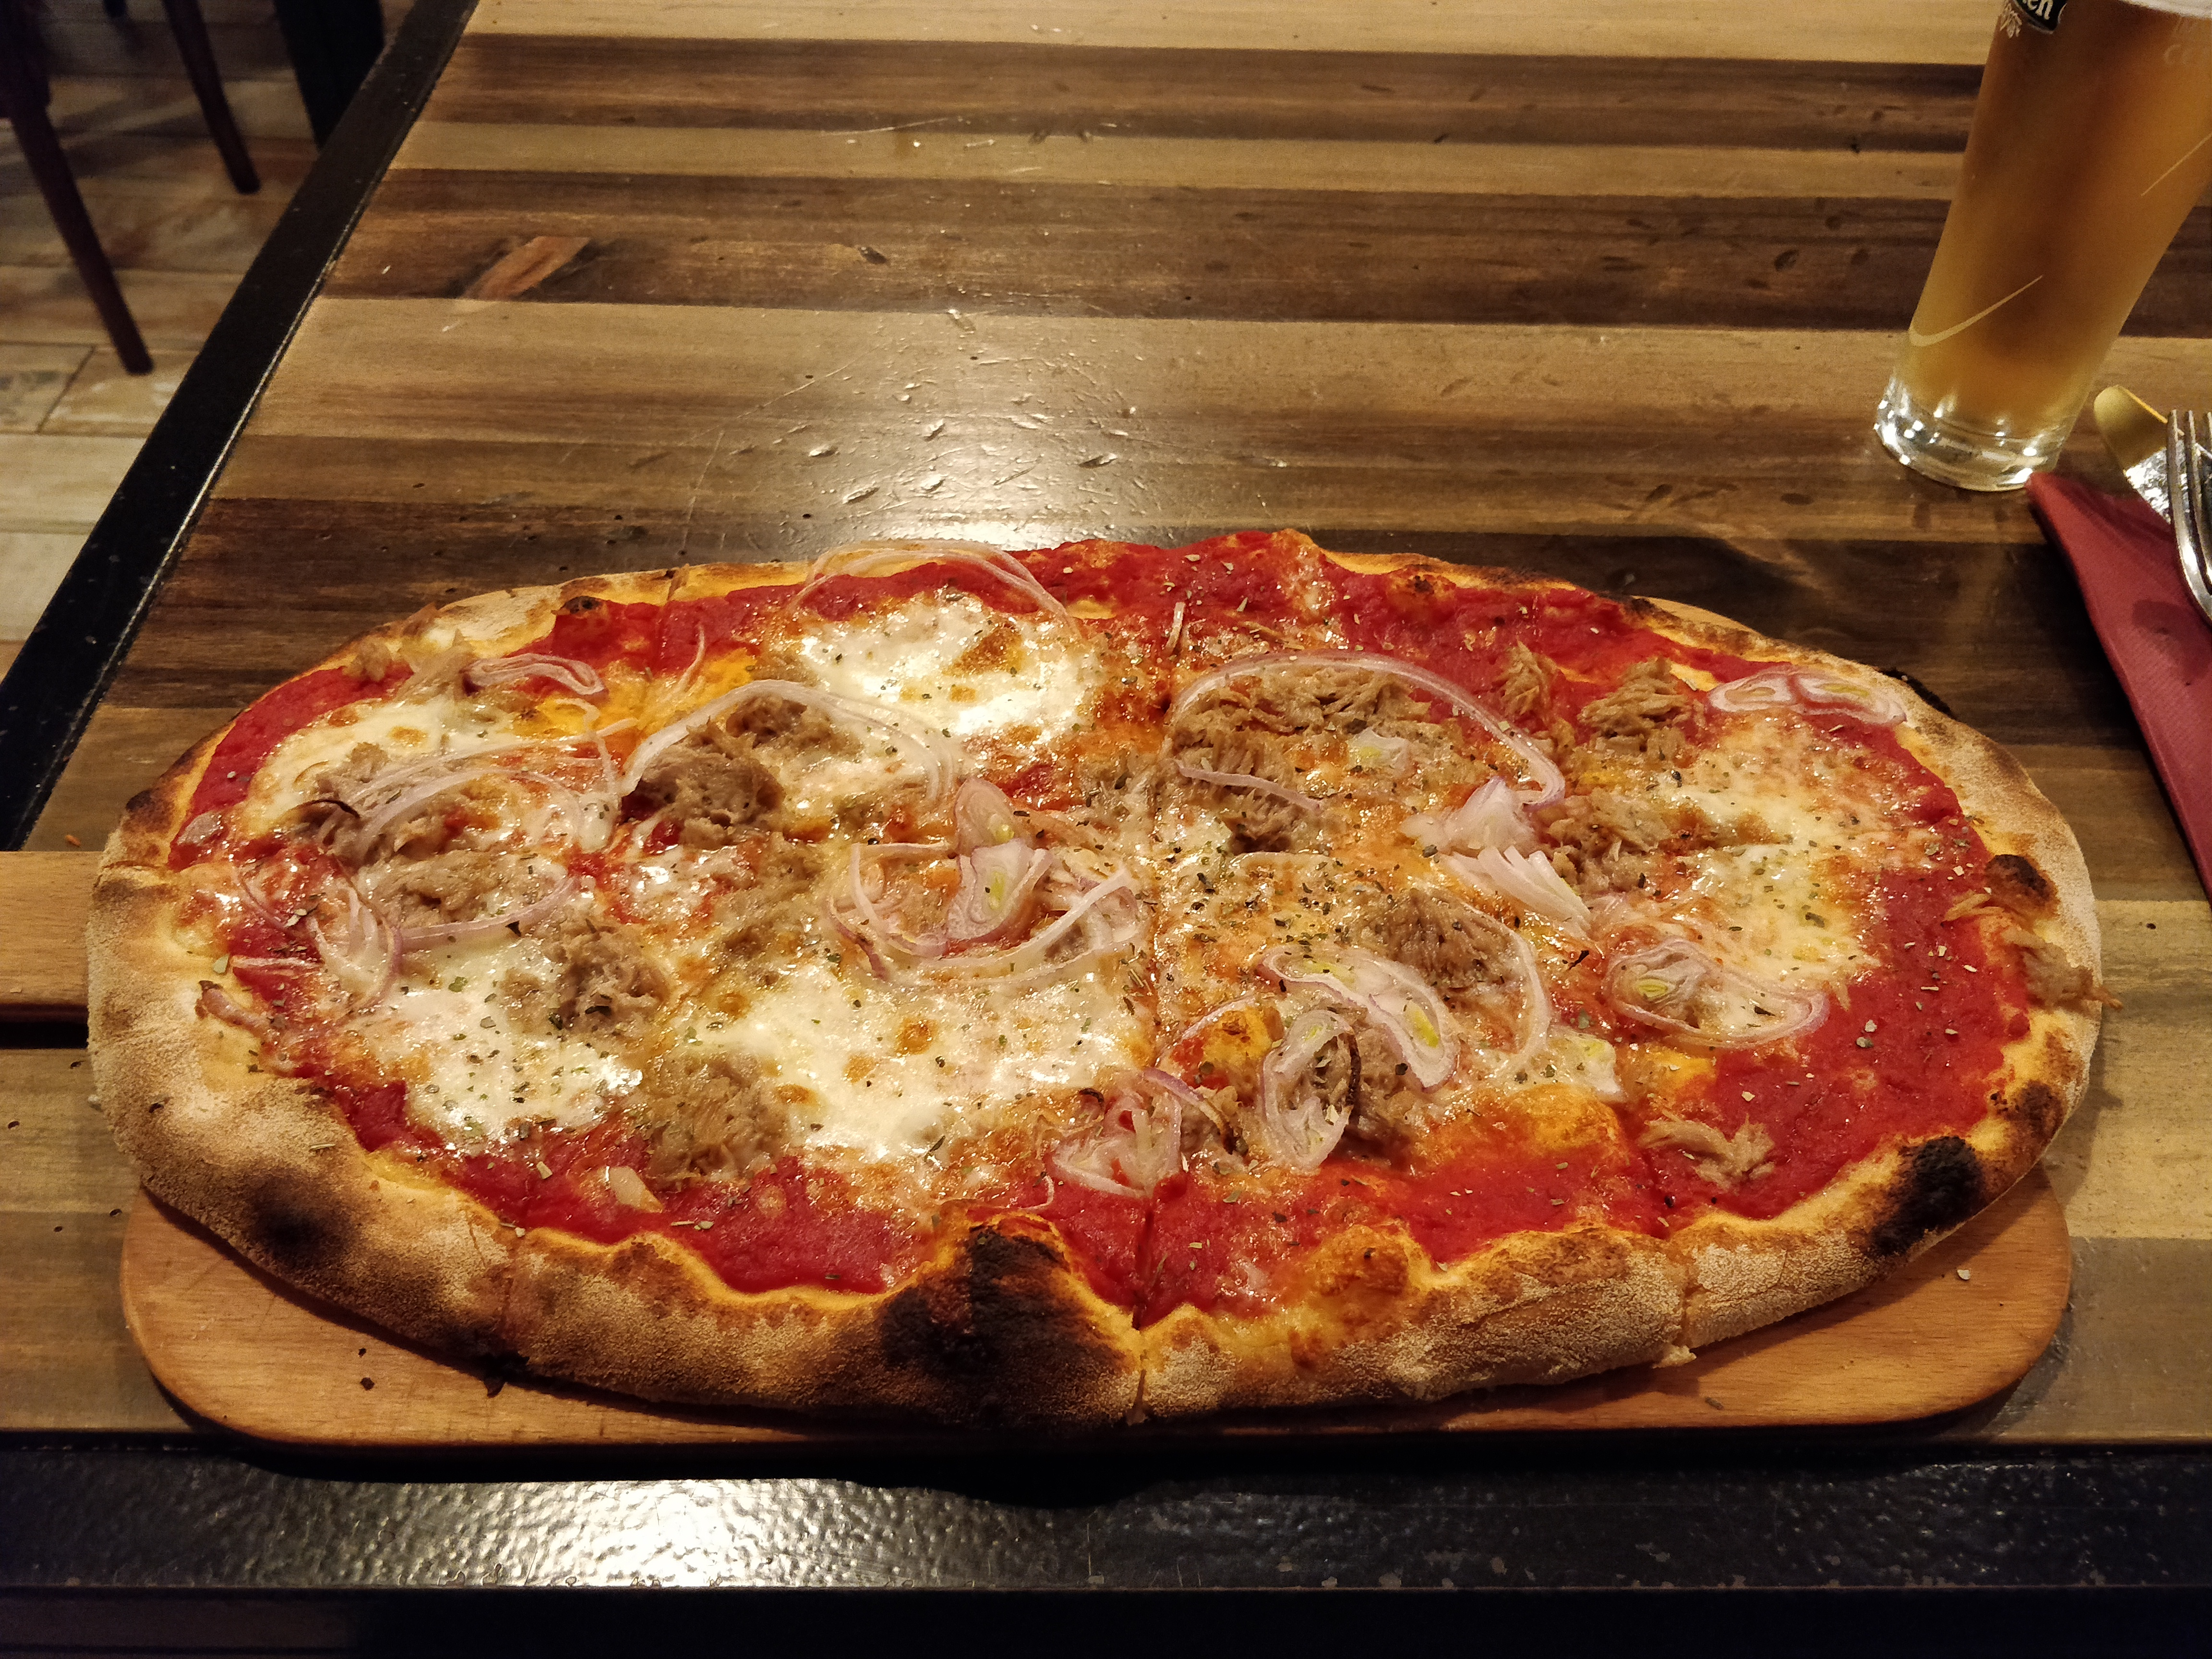 https://foodloader.net/nico_2019-01-02_pizza-thunfisch-zwiebel.jpg